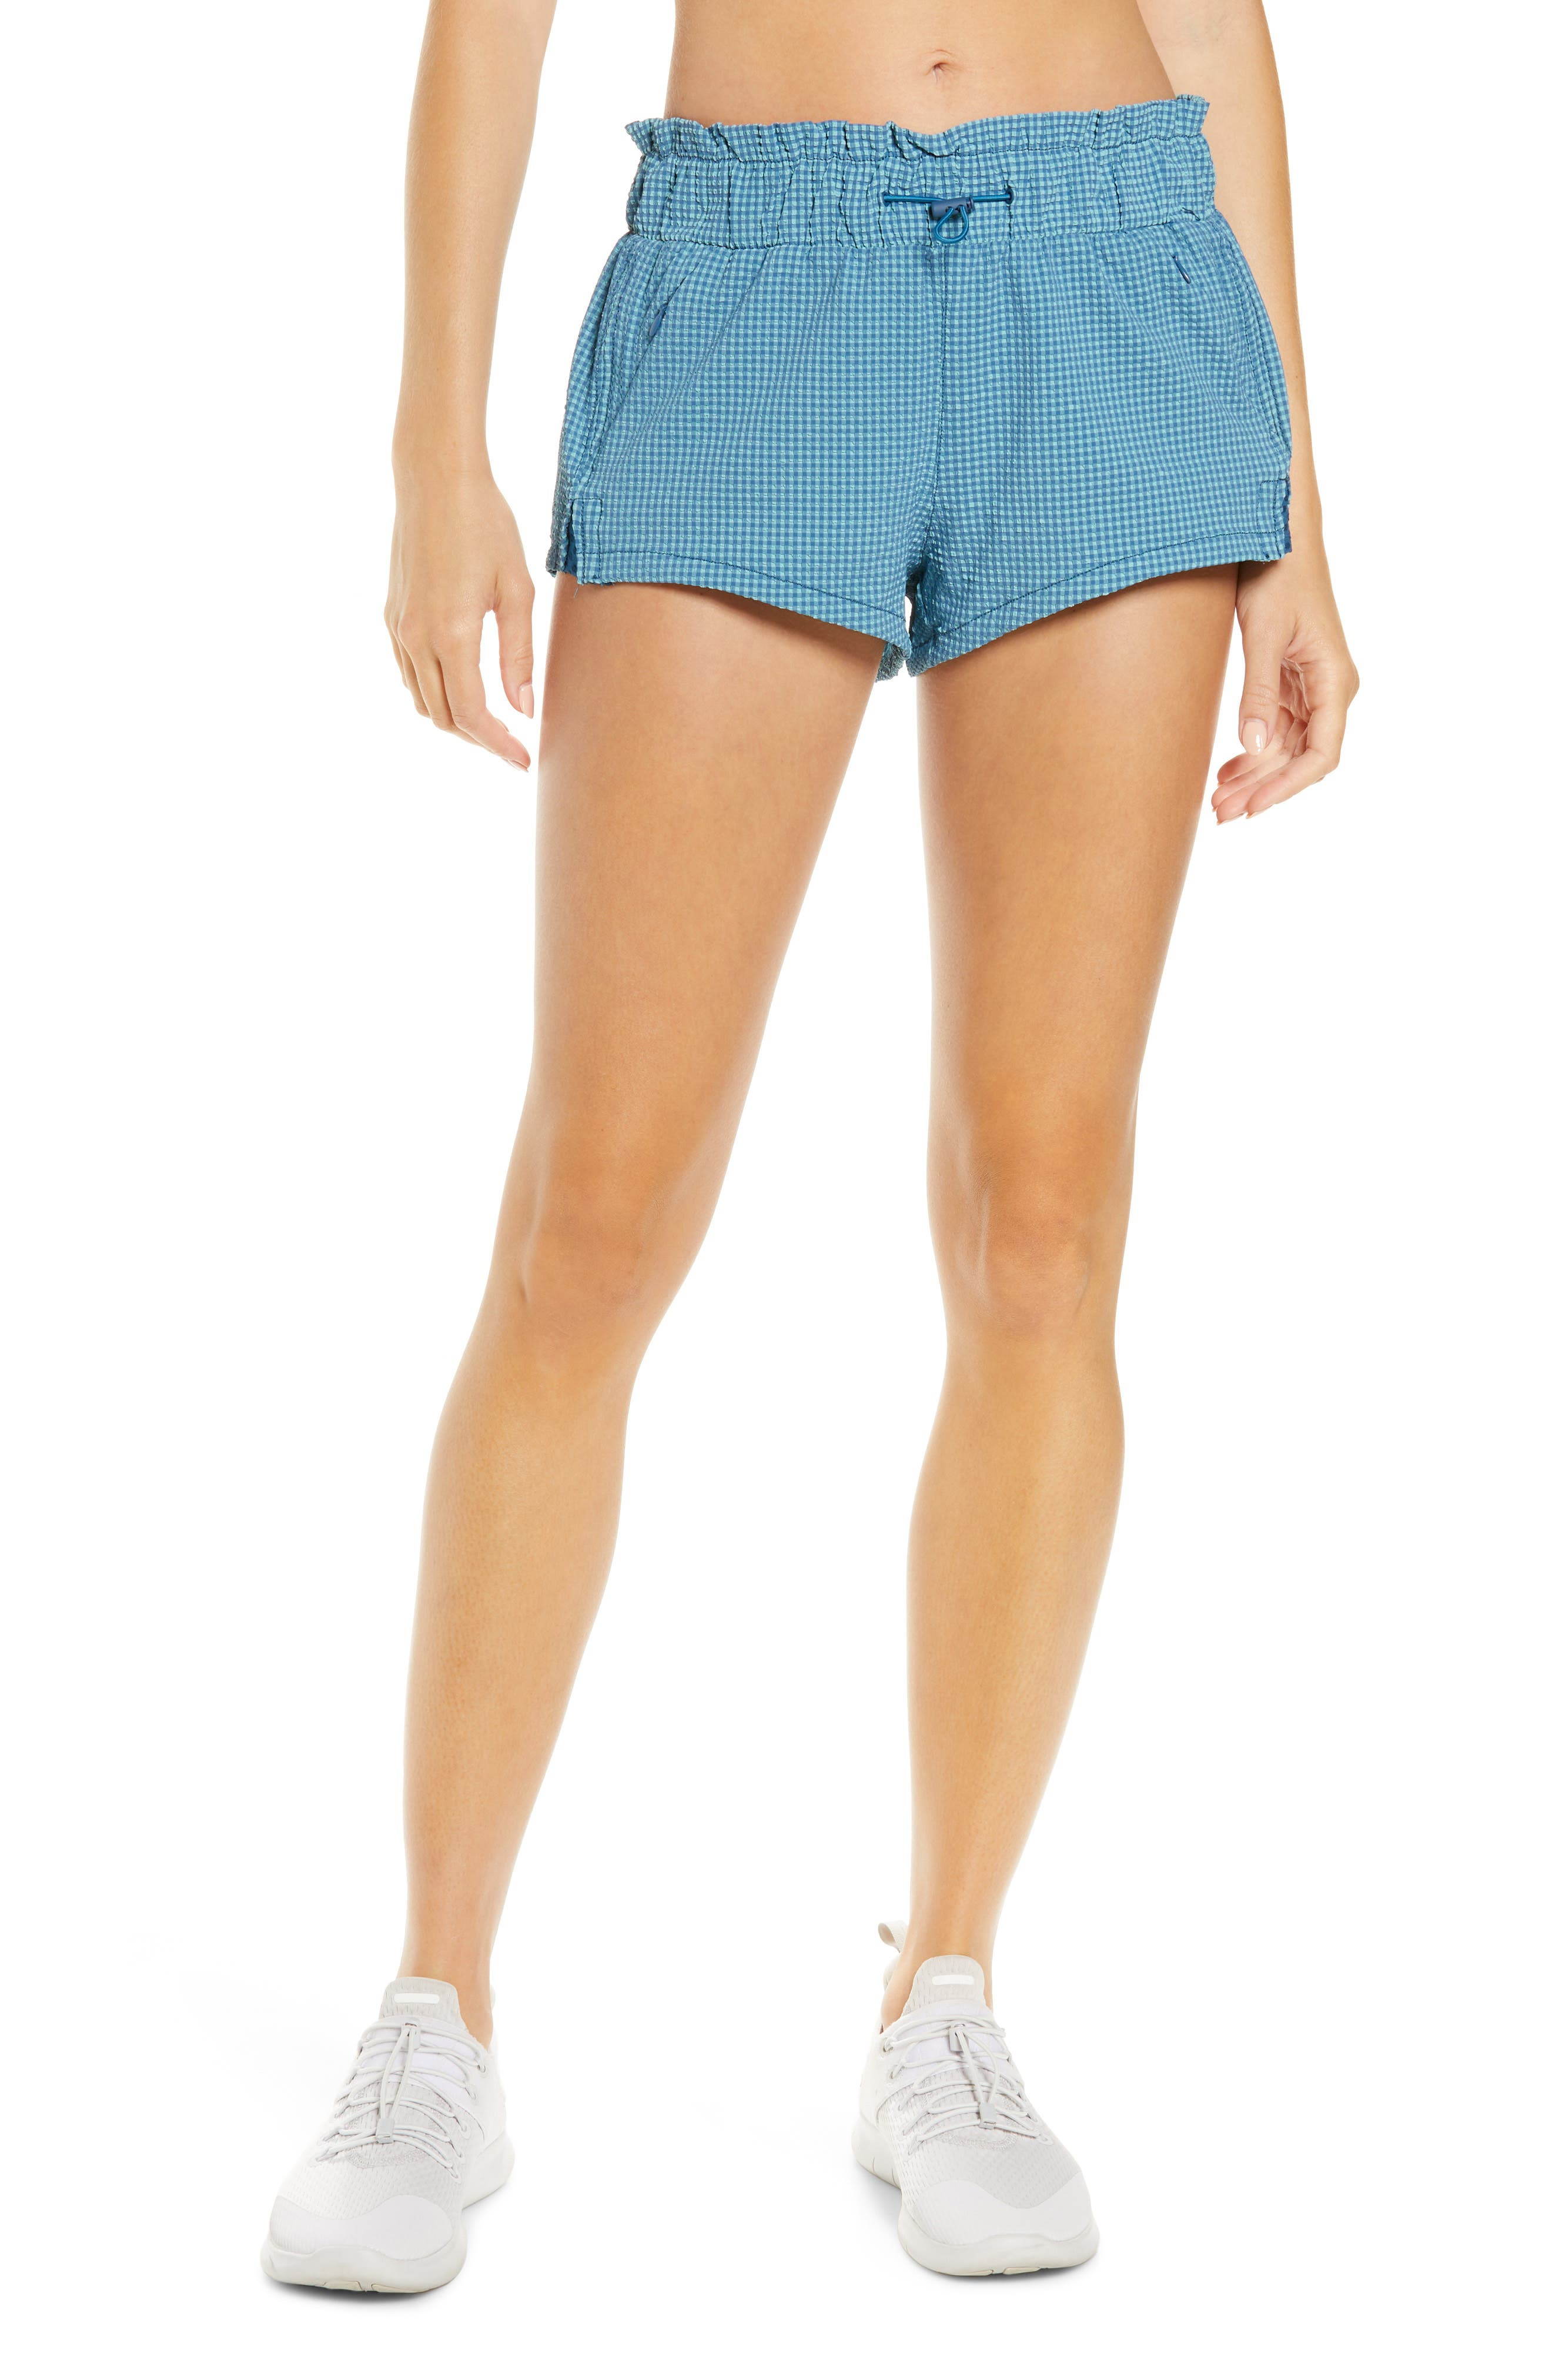 Forty Love Shorts